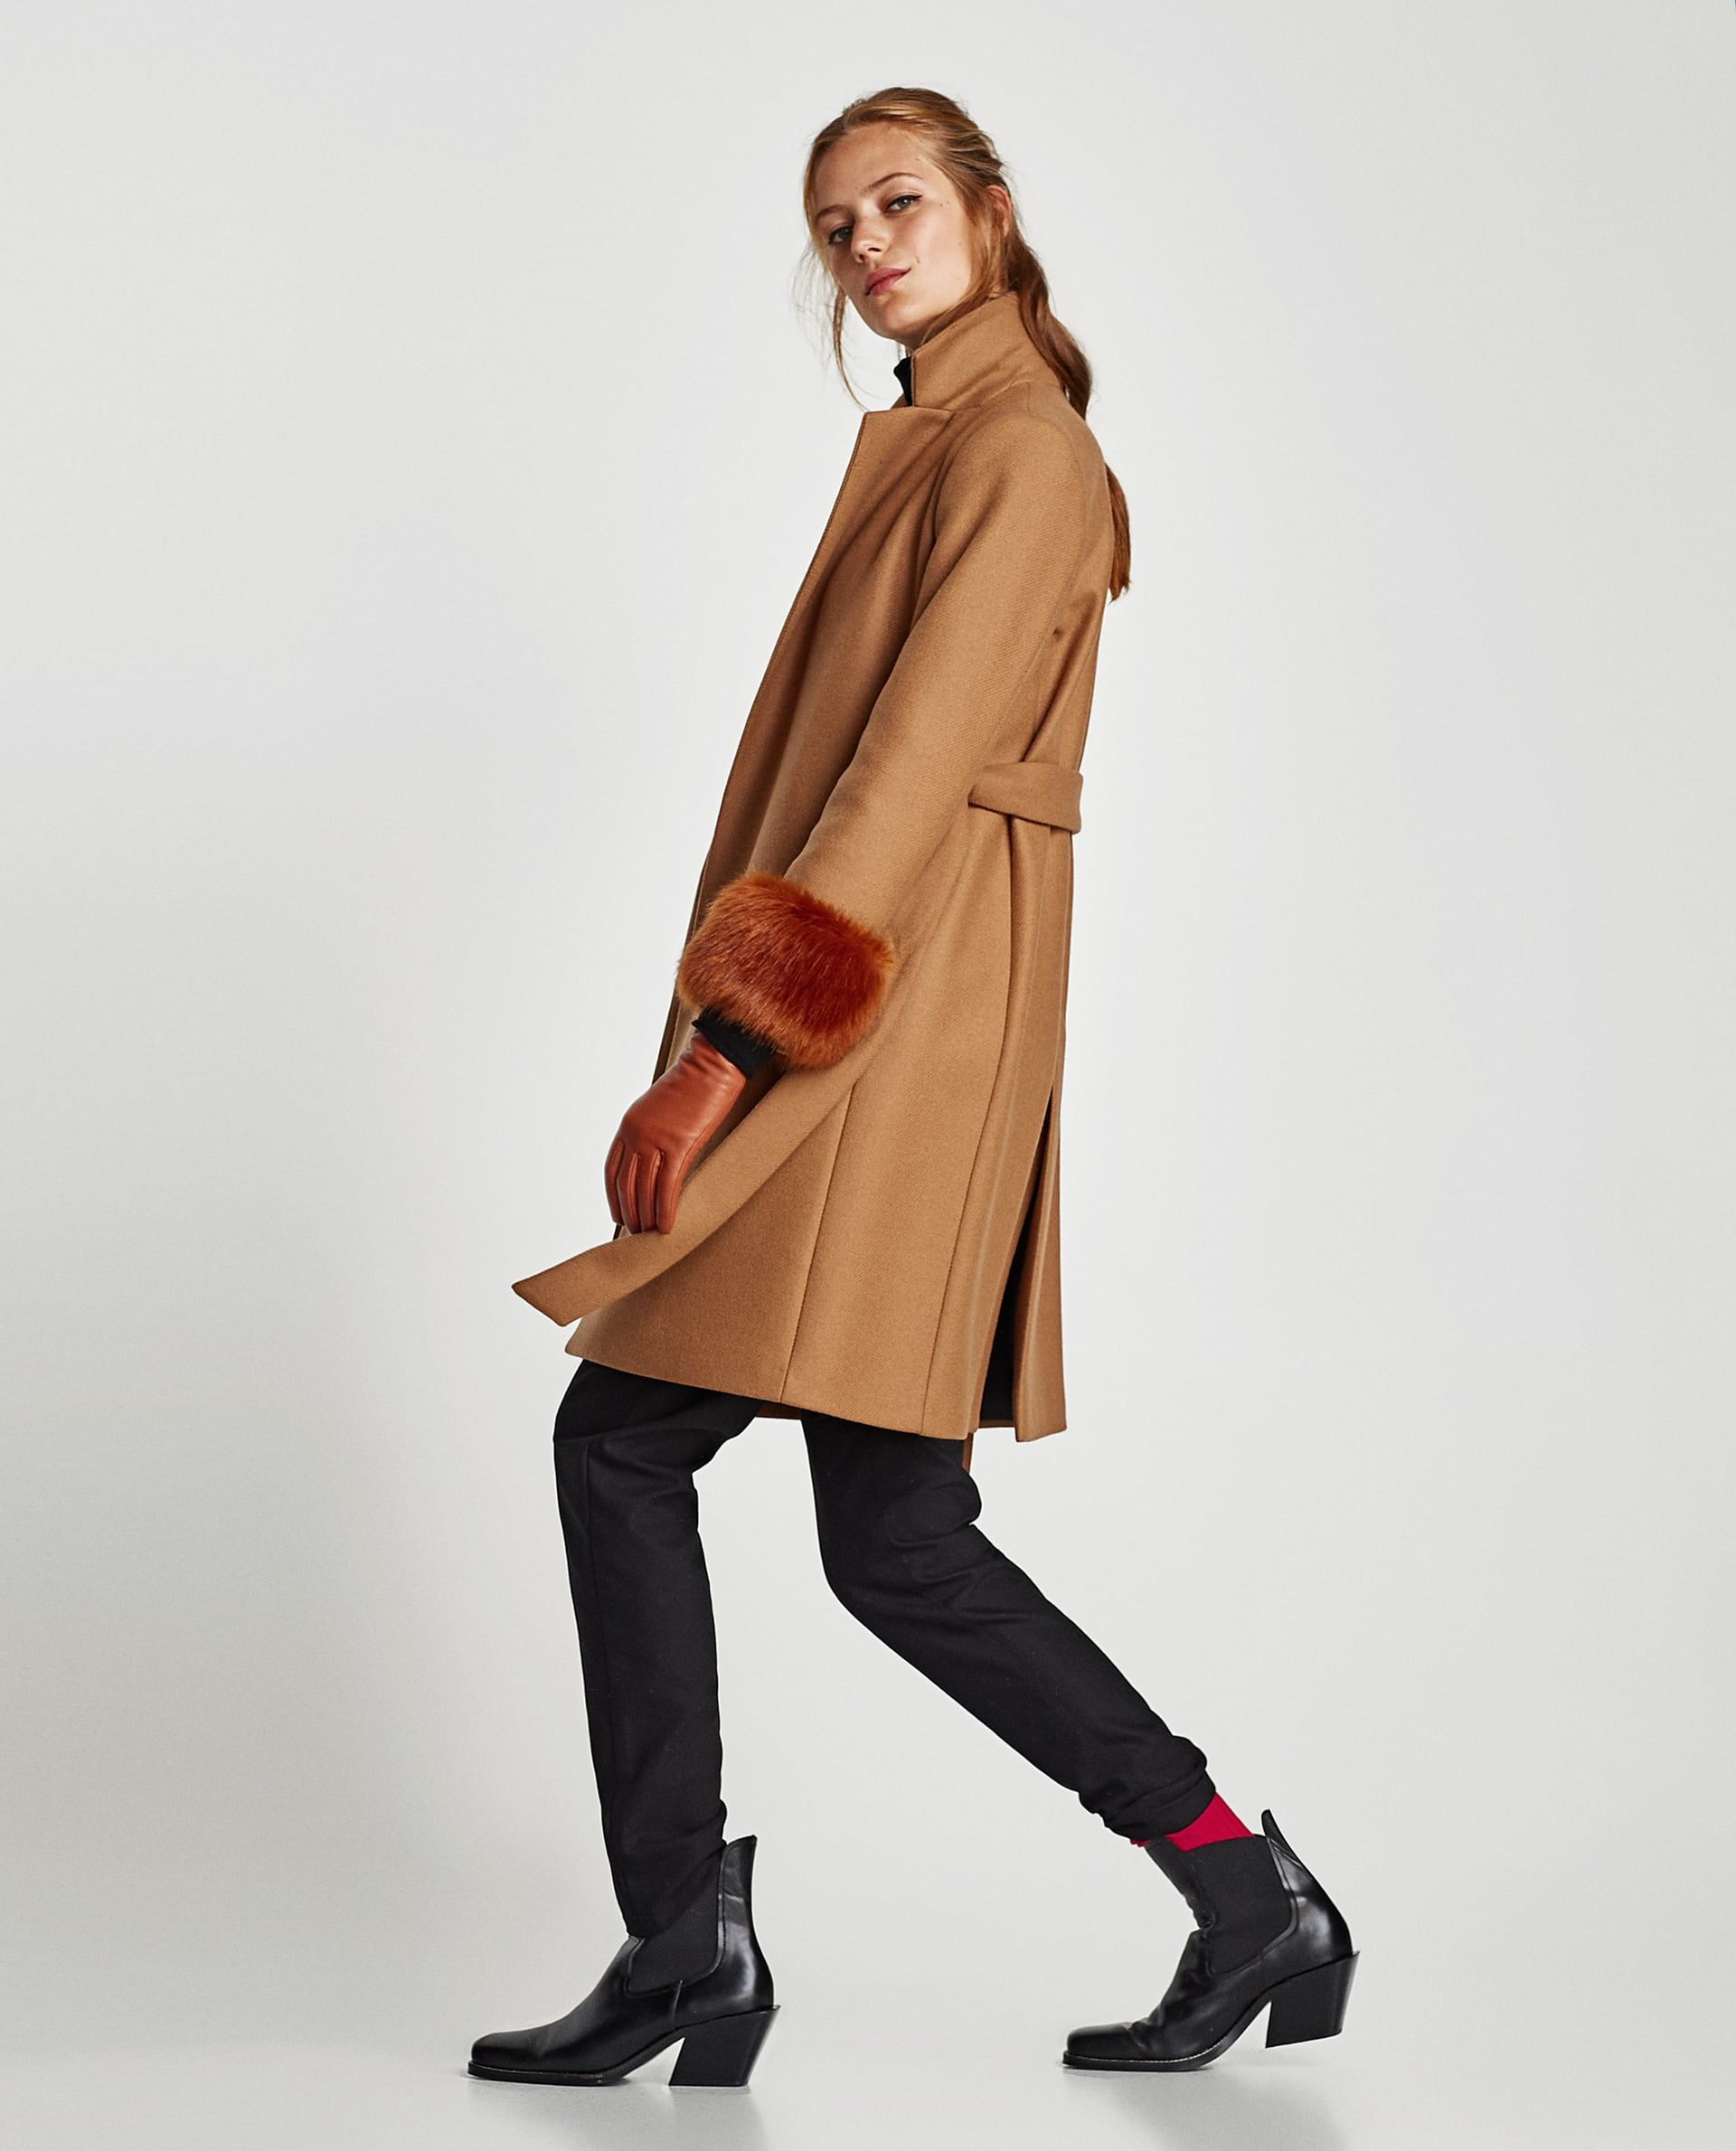 f04ba0e3 Image 3 of COAT WITH TEXTURED CUFFS from Zara | Shop | Coat, Fashion ...